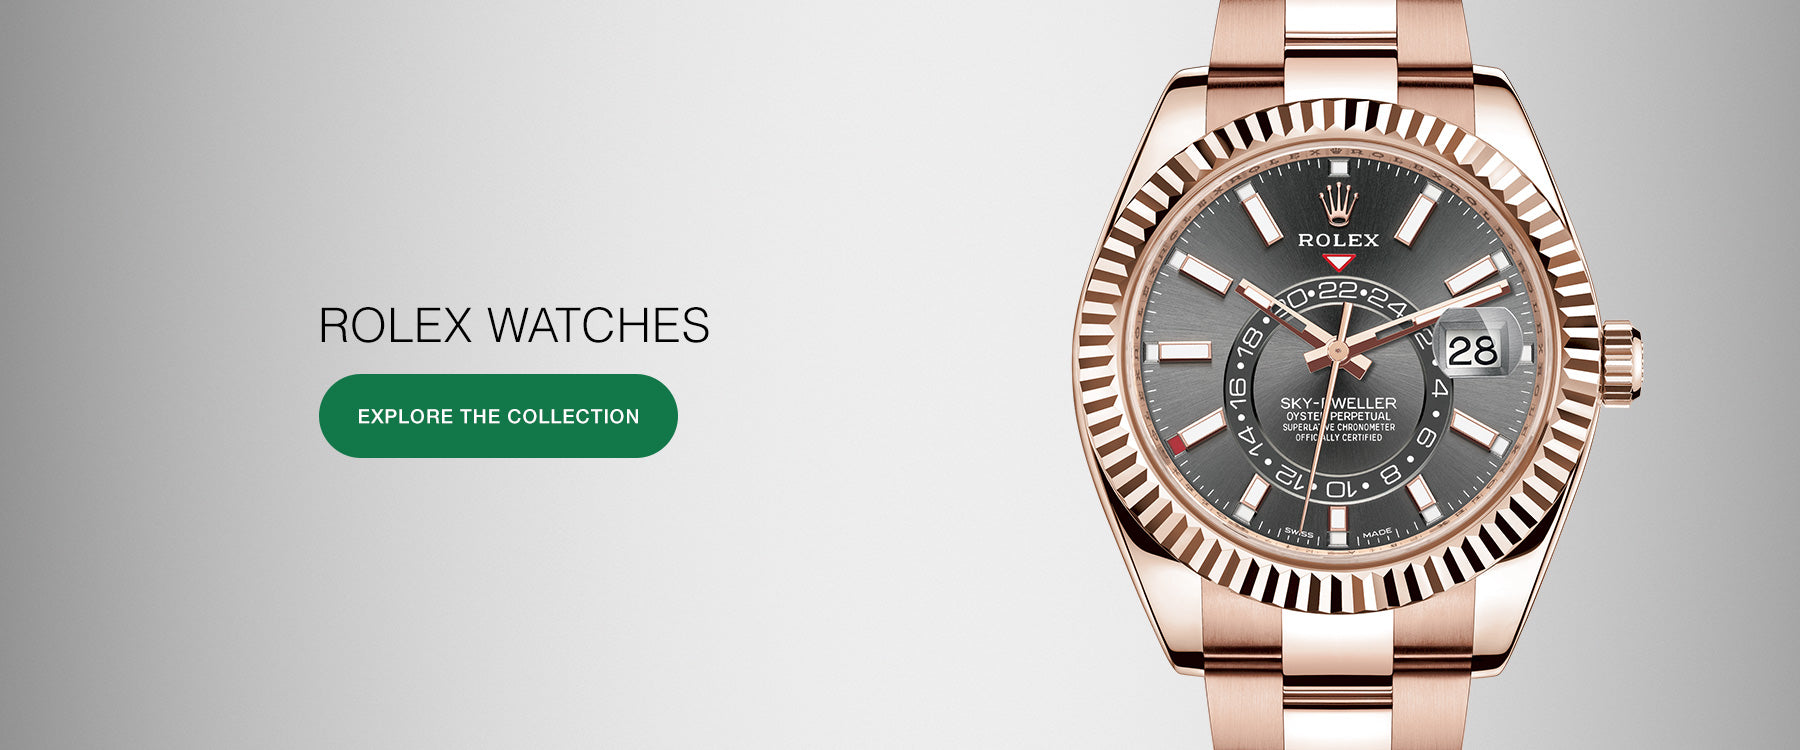 Rolex Watches at Deutsch Houston. Explore the collection.